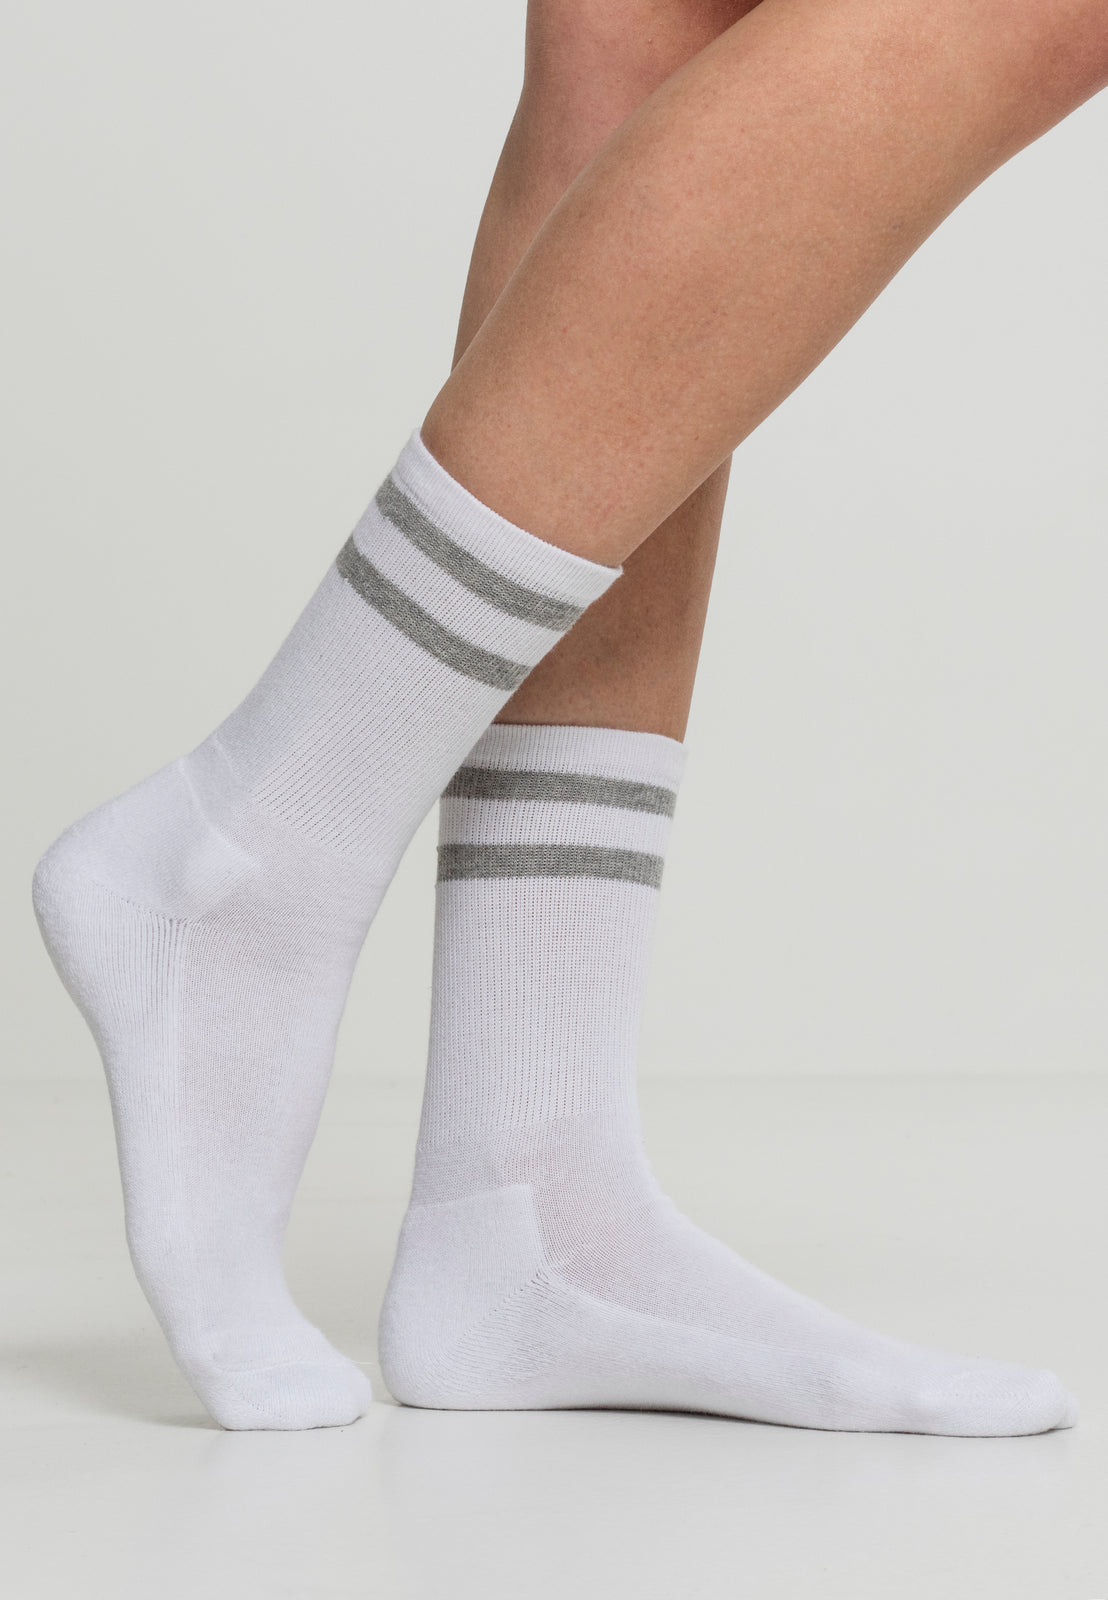 2-Stripe Socks 2-Pack white/lightgrey